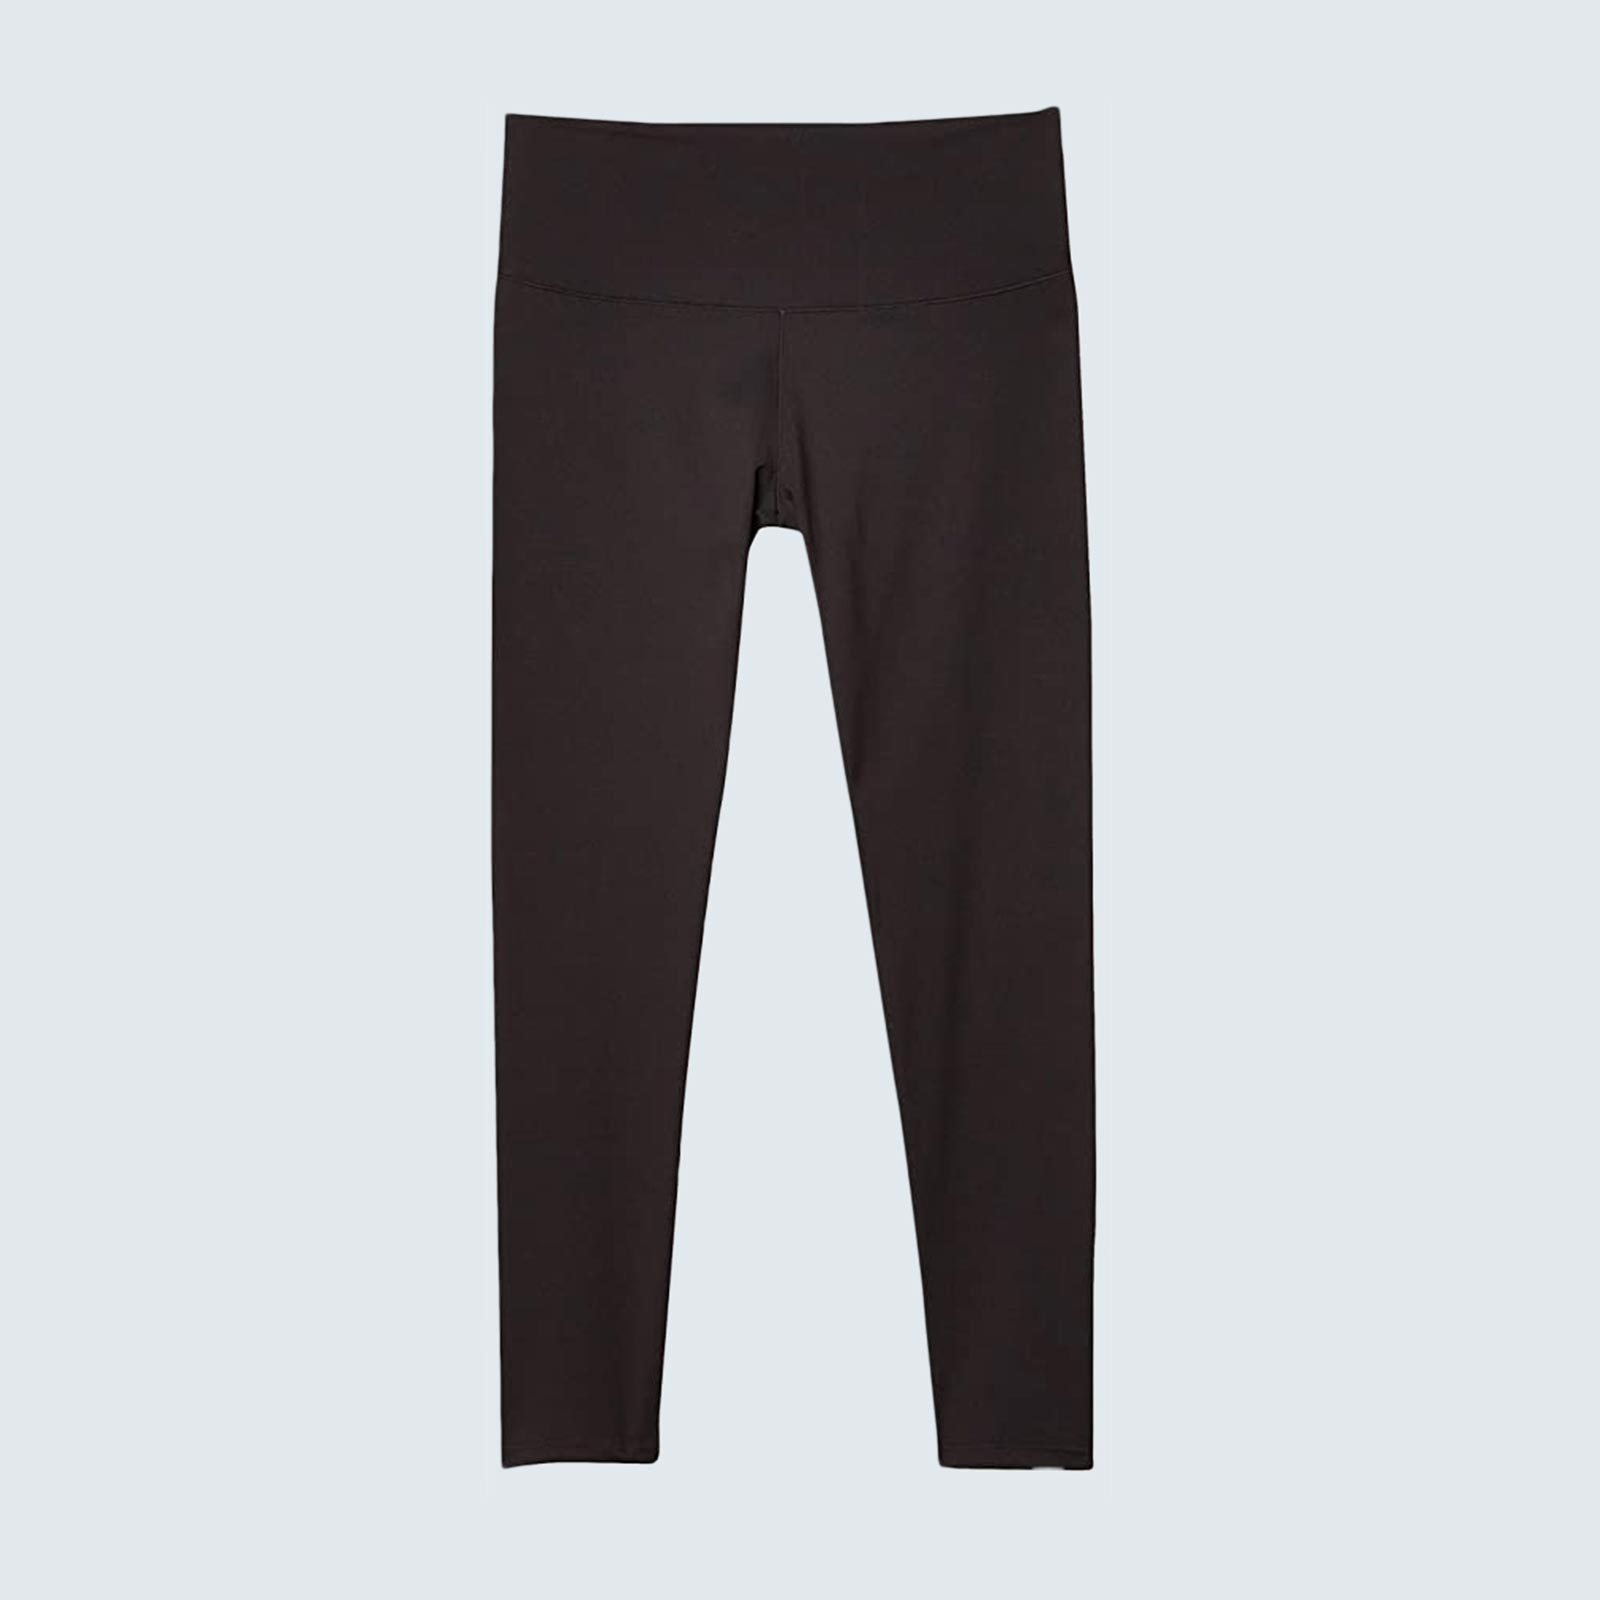 Best leggings for firm control: Maidenform Firm Foundations Shaping Leggings